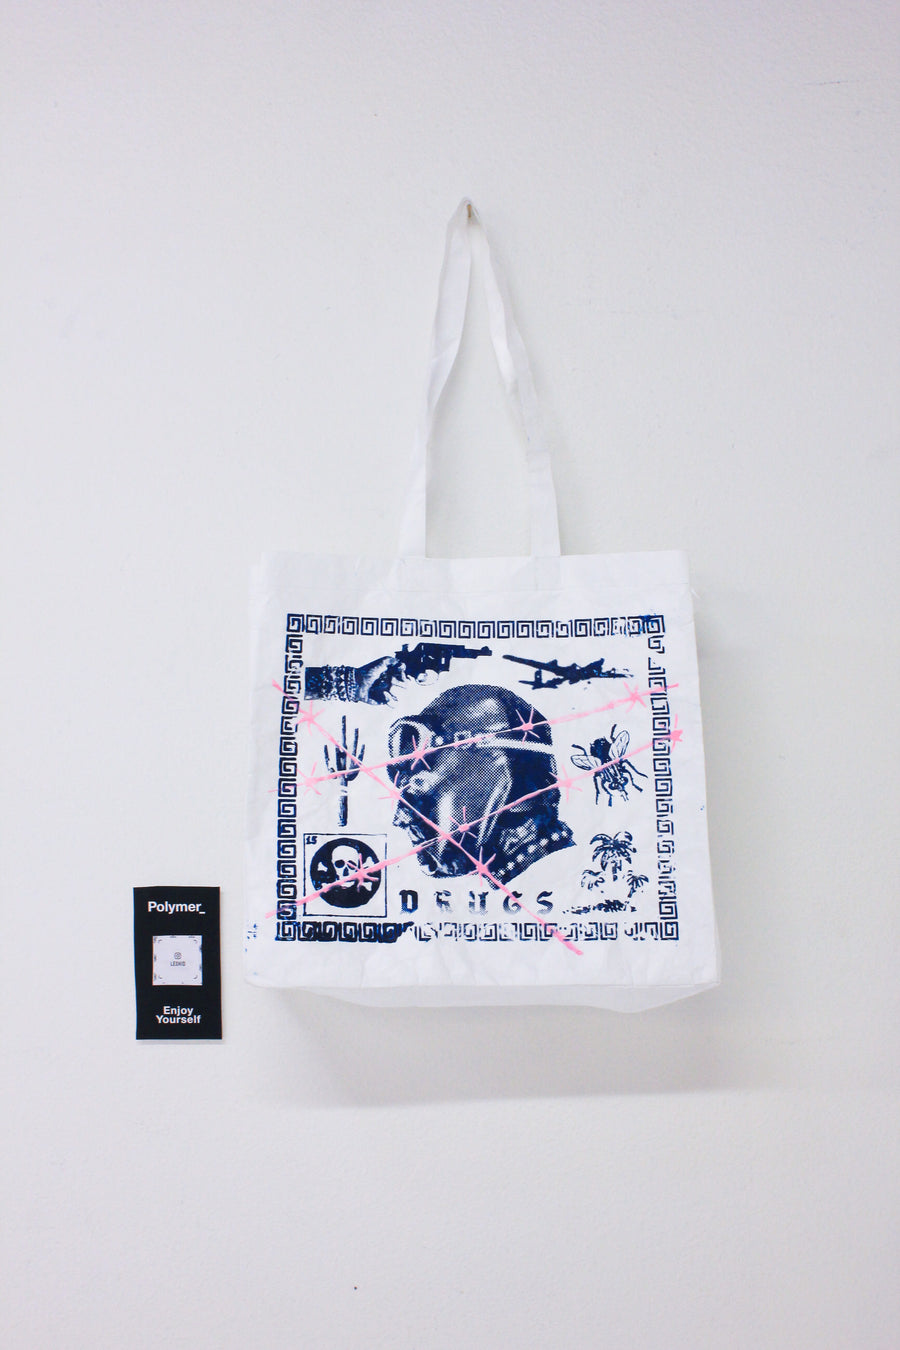 Polymer_ Enjoy Yourself Art Tote by Ian Bragg